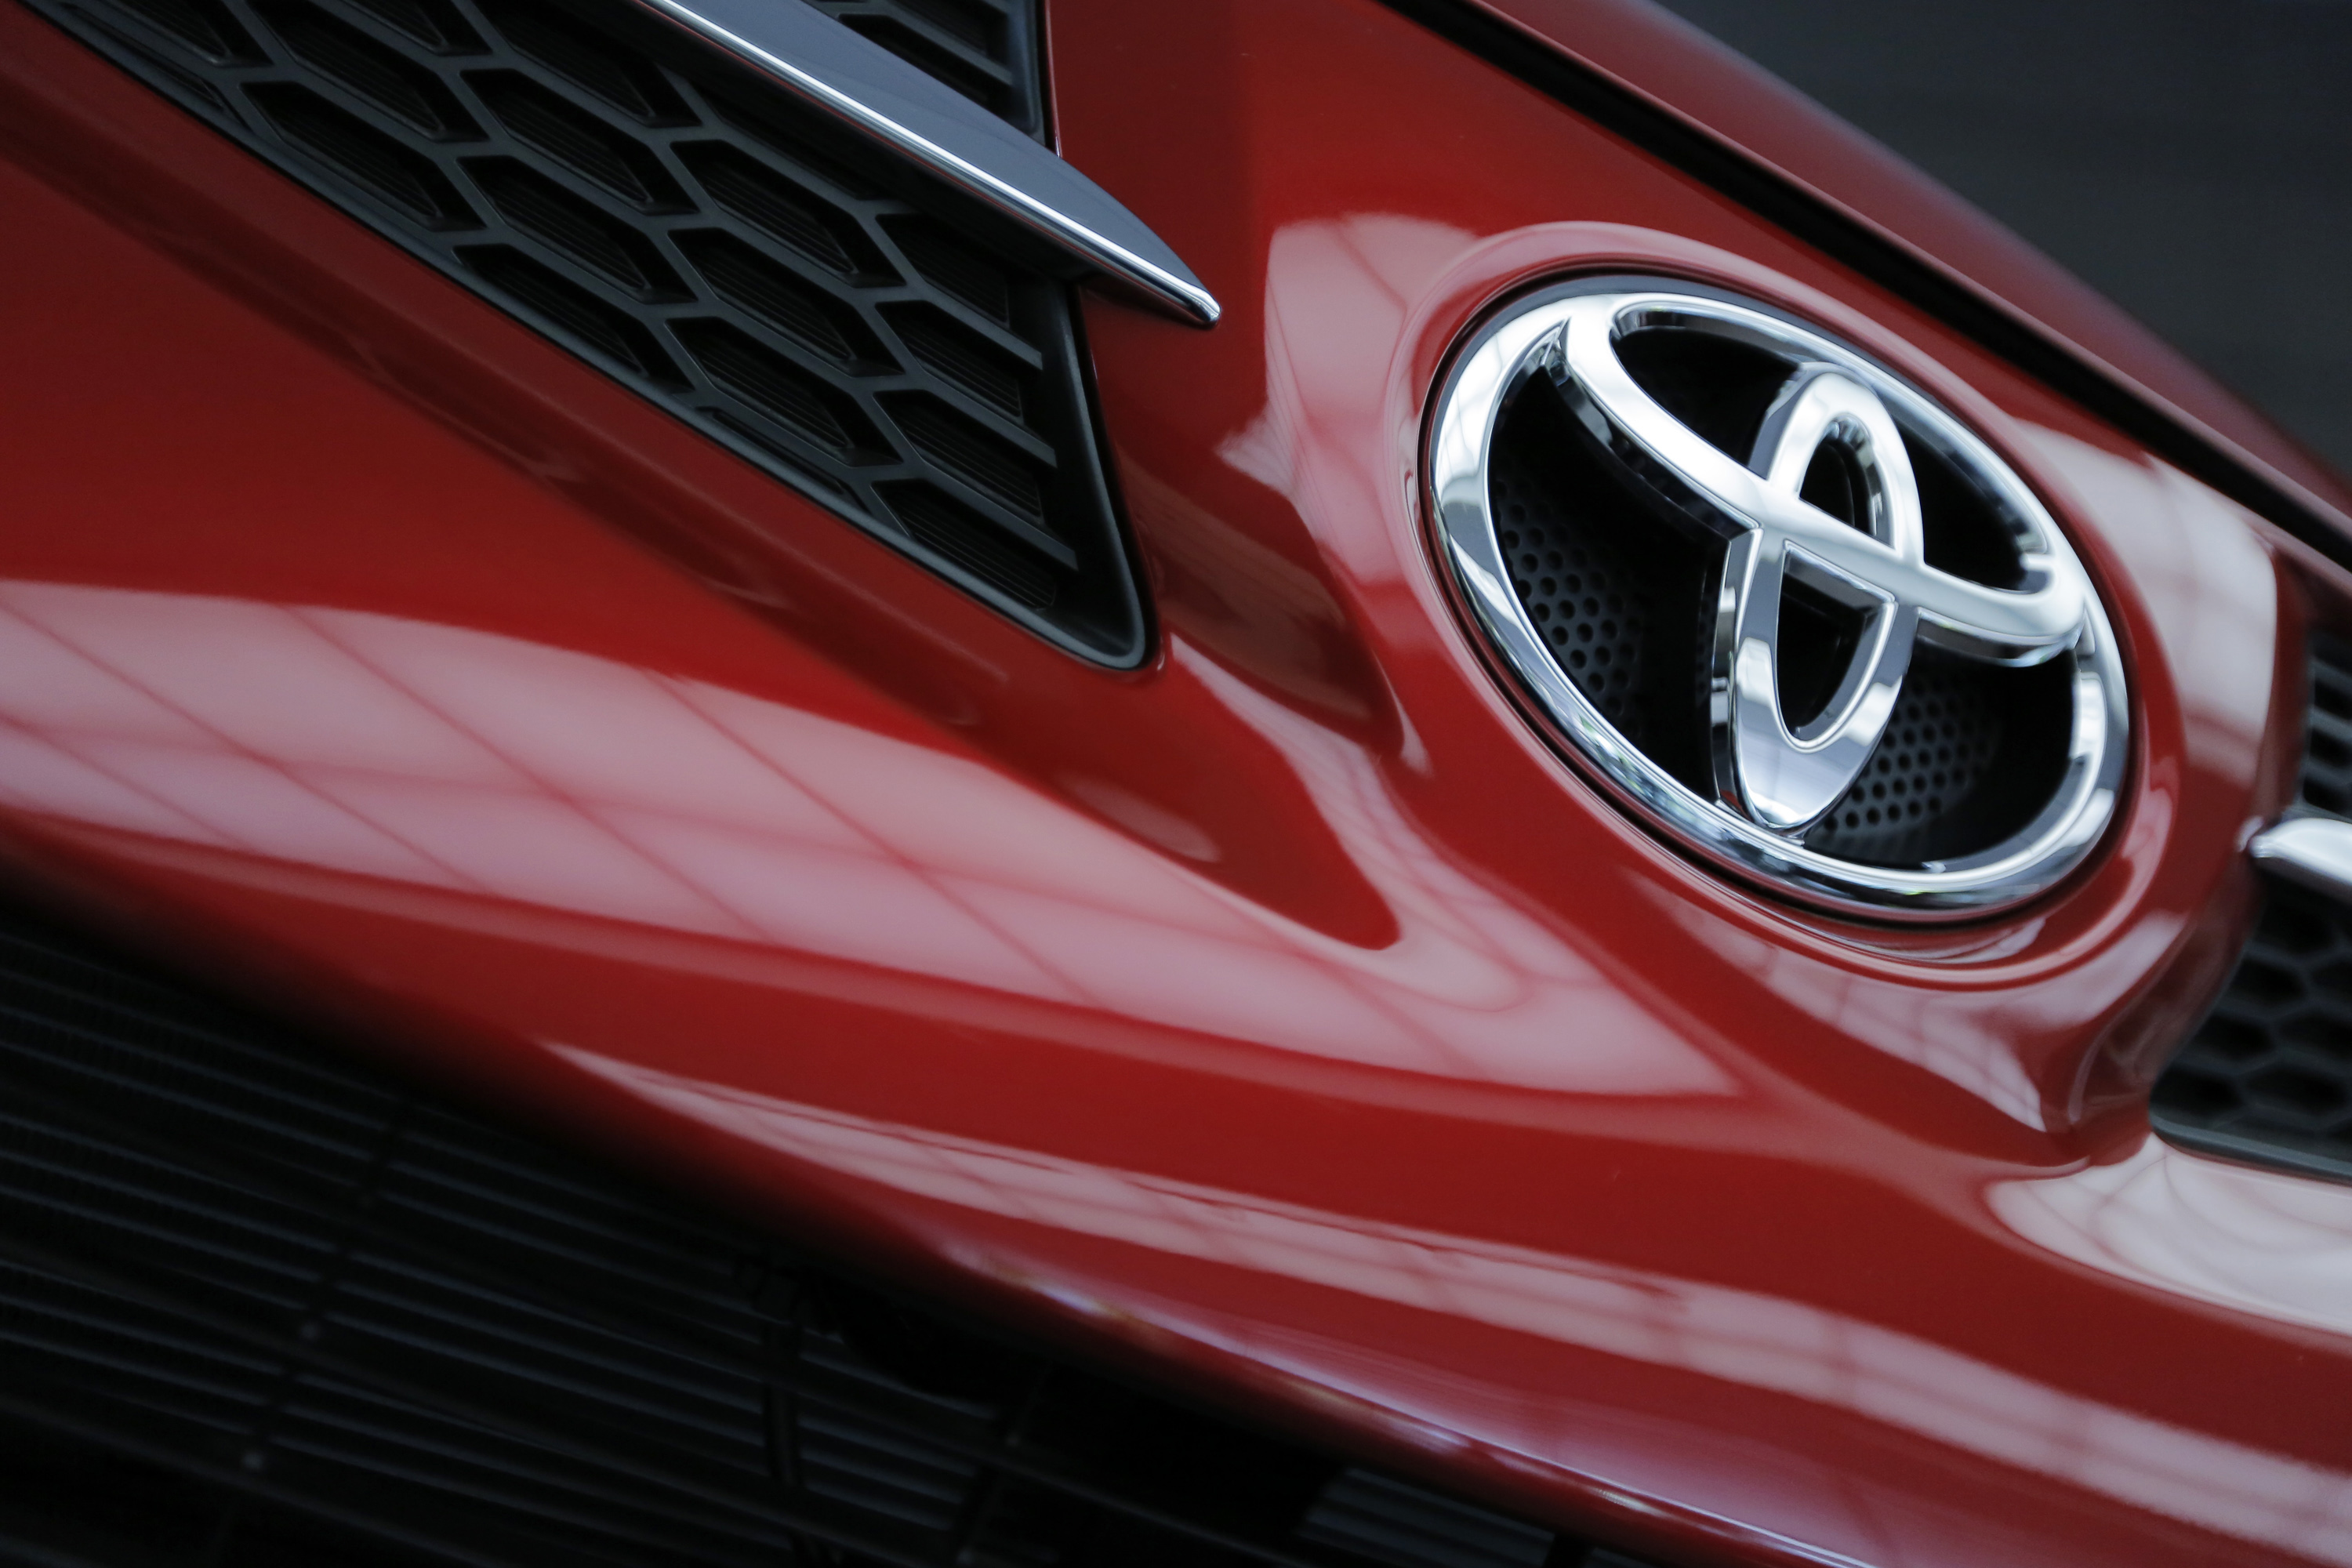 Toyota maintains top spot in global vehicle sales over VW, GM (AP Photo/Itsuo Inouye, File)